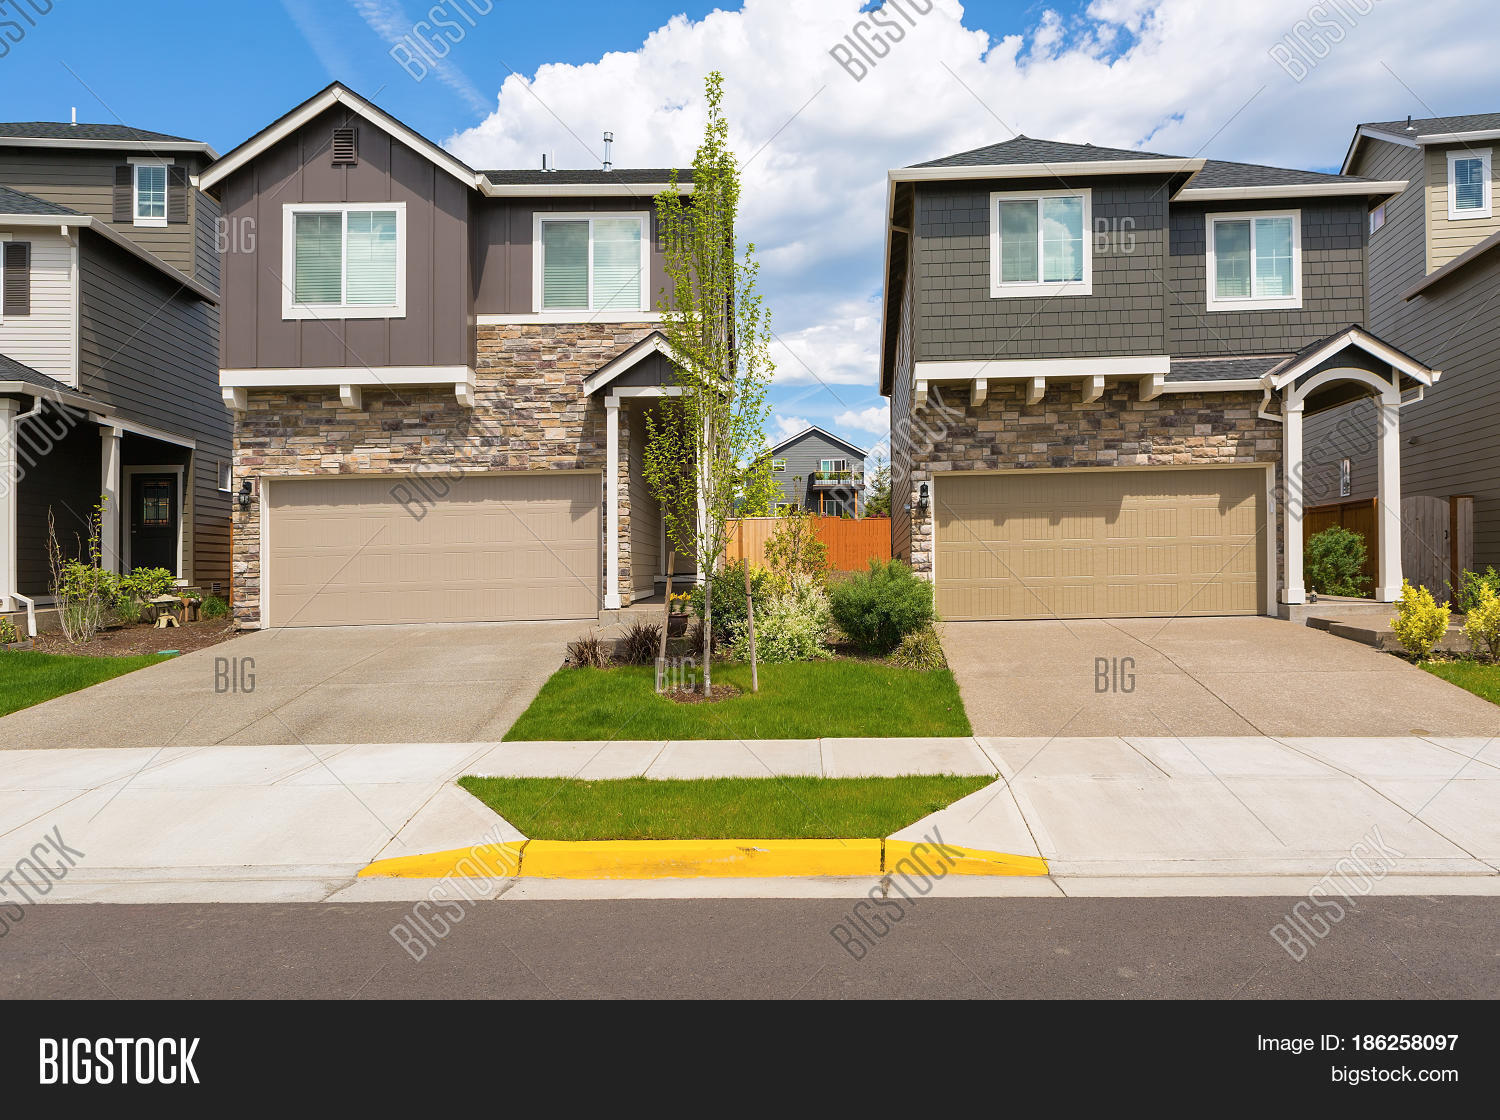 Tract homes front new subdivision image photo bigstock for Tract home builders